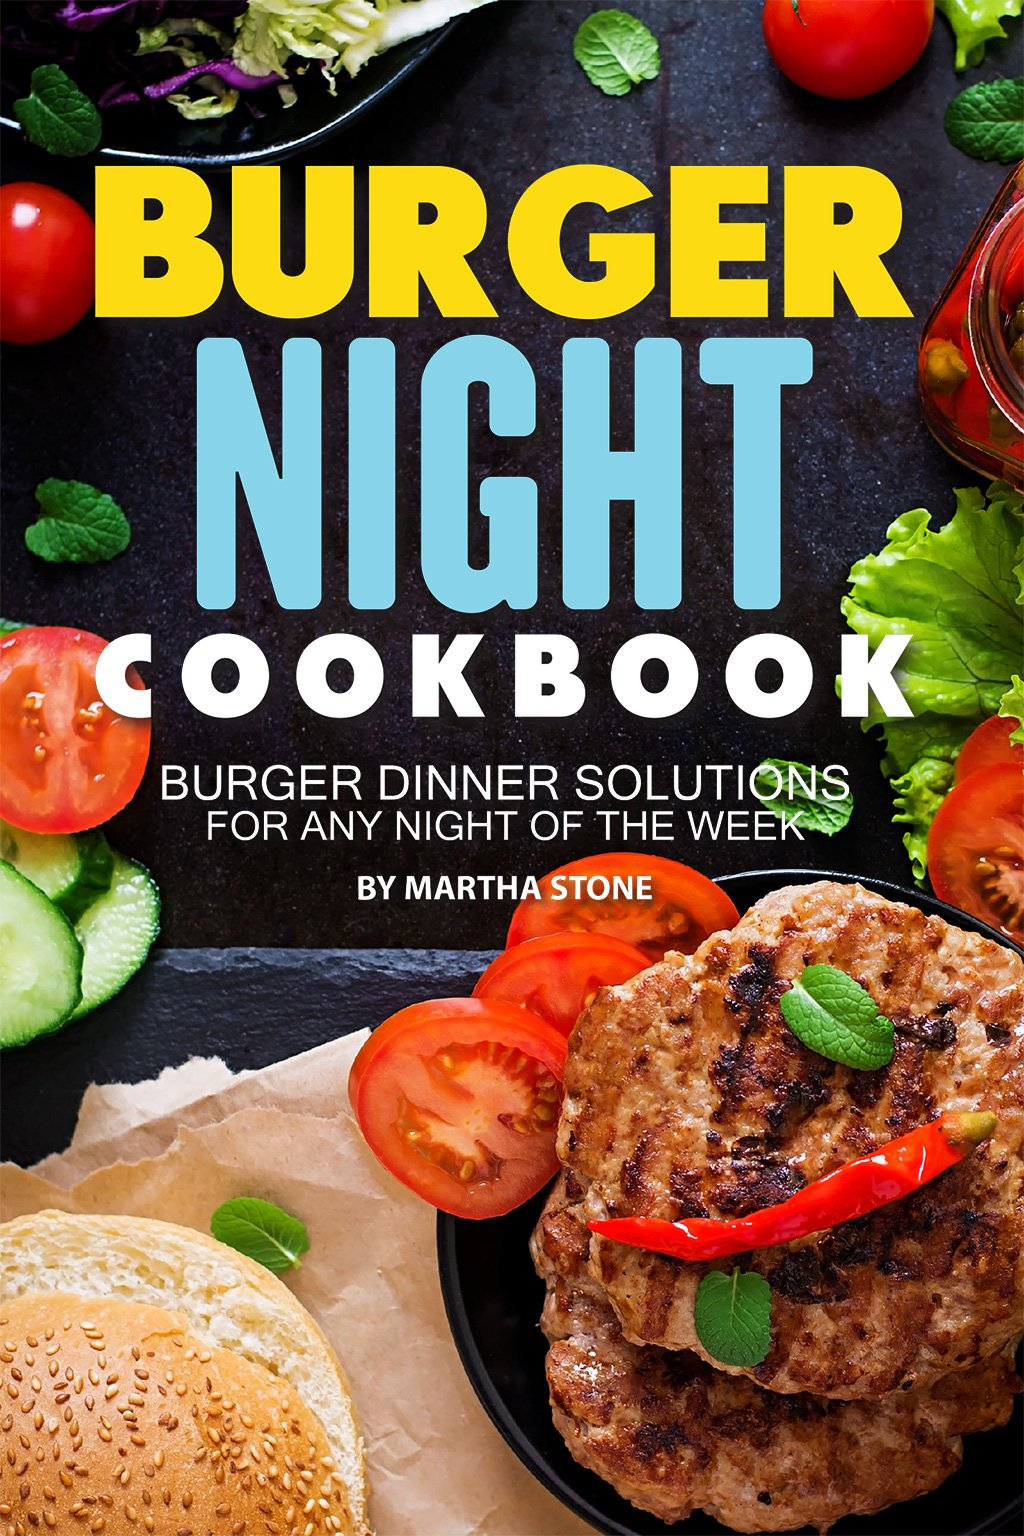 Image OfBurger Night Cookbook: Burger Dinner Solutions For Any Night Of The Week (English Edition)